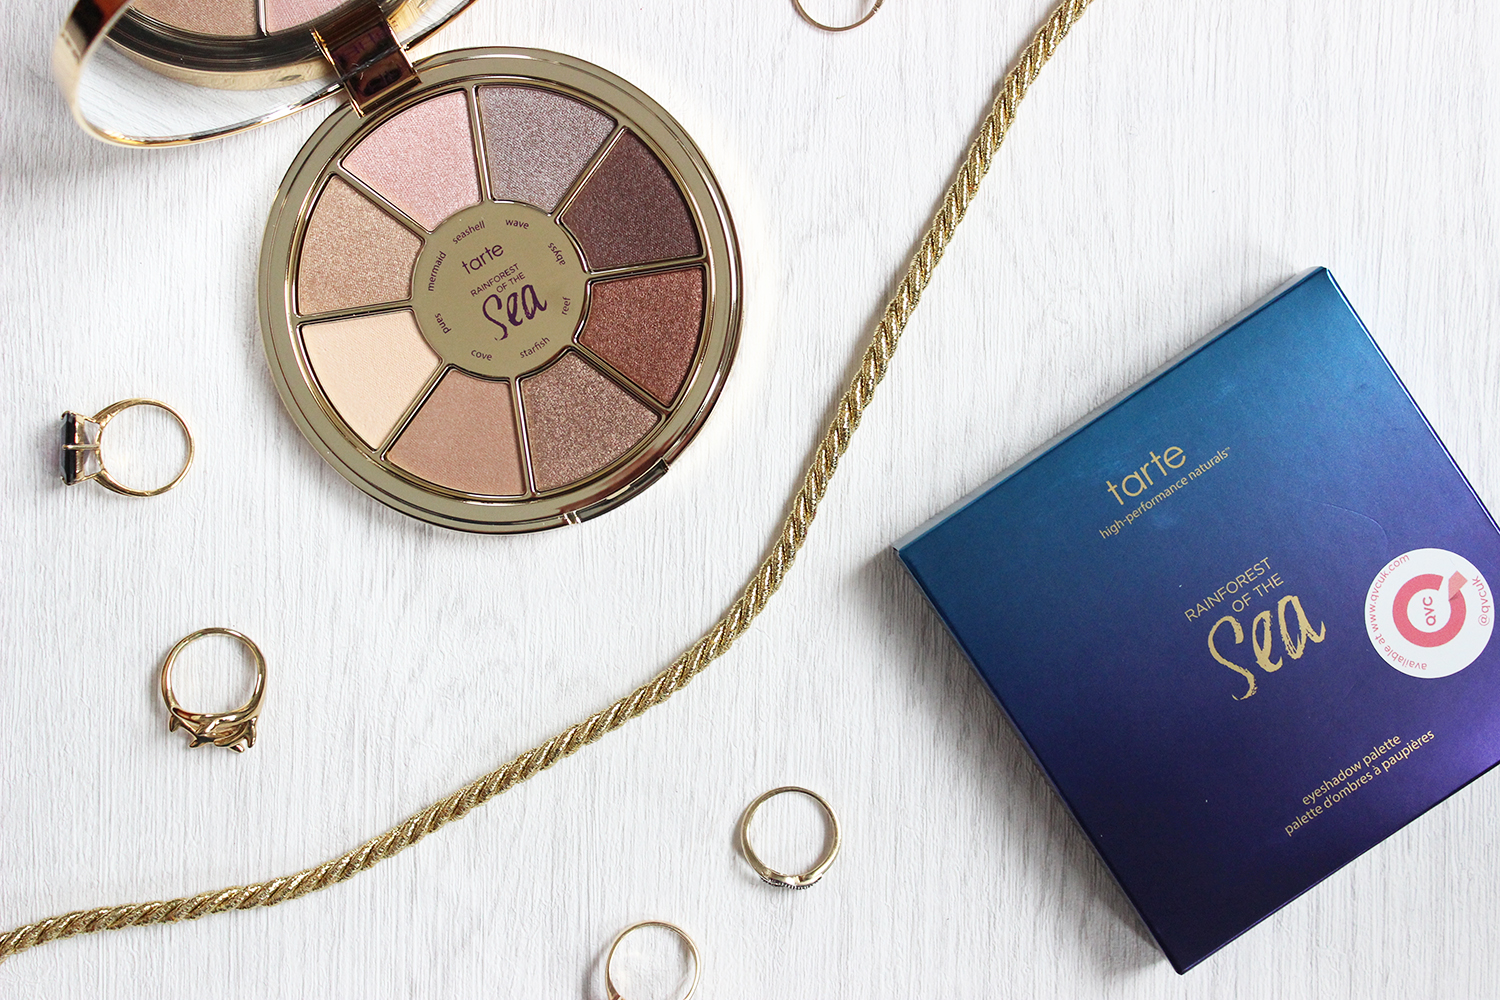 Tarte Rainforest of the Sea eye shadow palette review and swatches